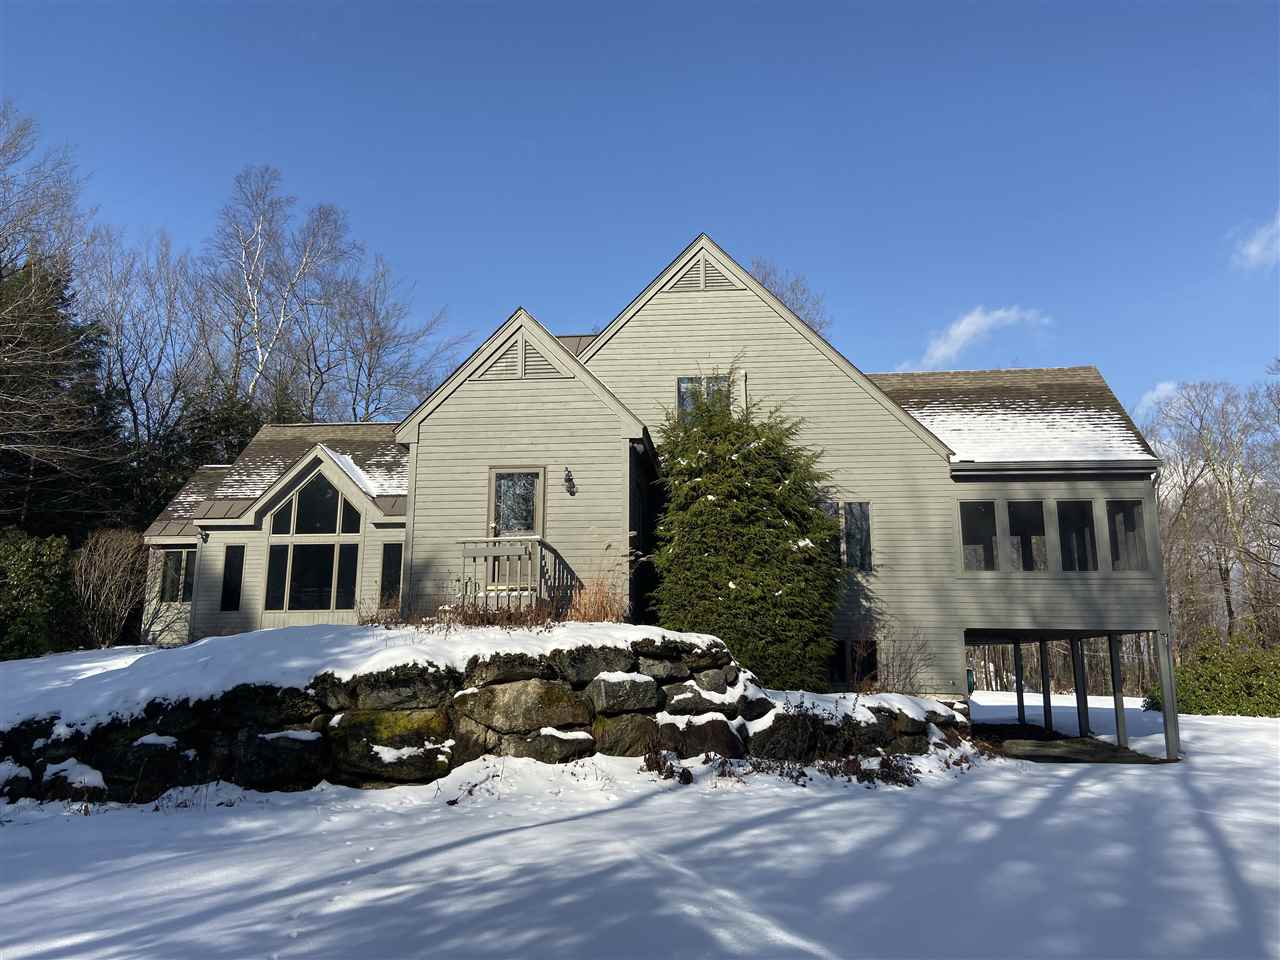 MLS 4787964: 11 Highwood Way, Grantham NH